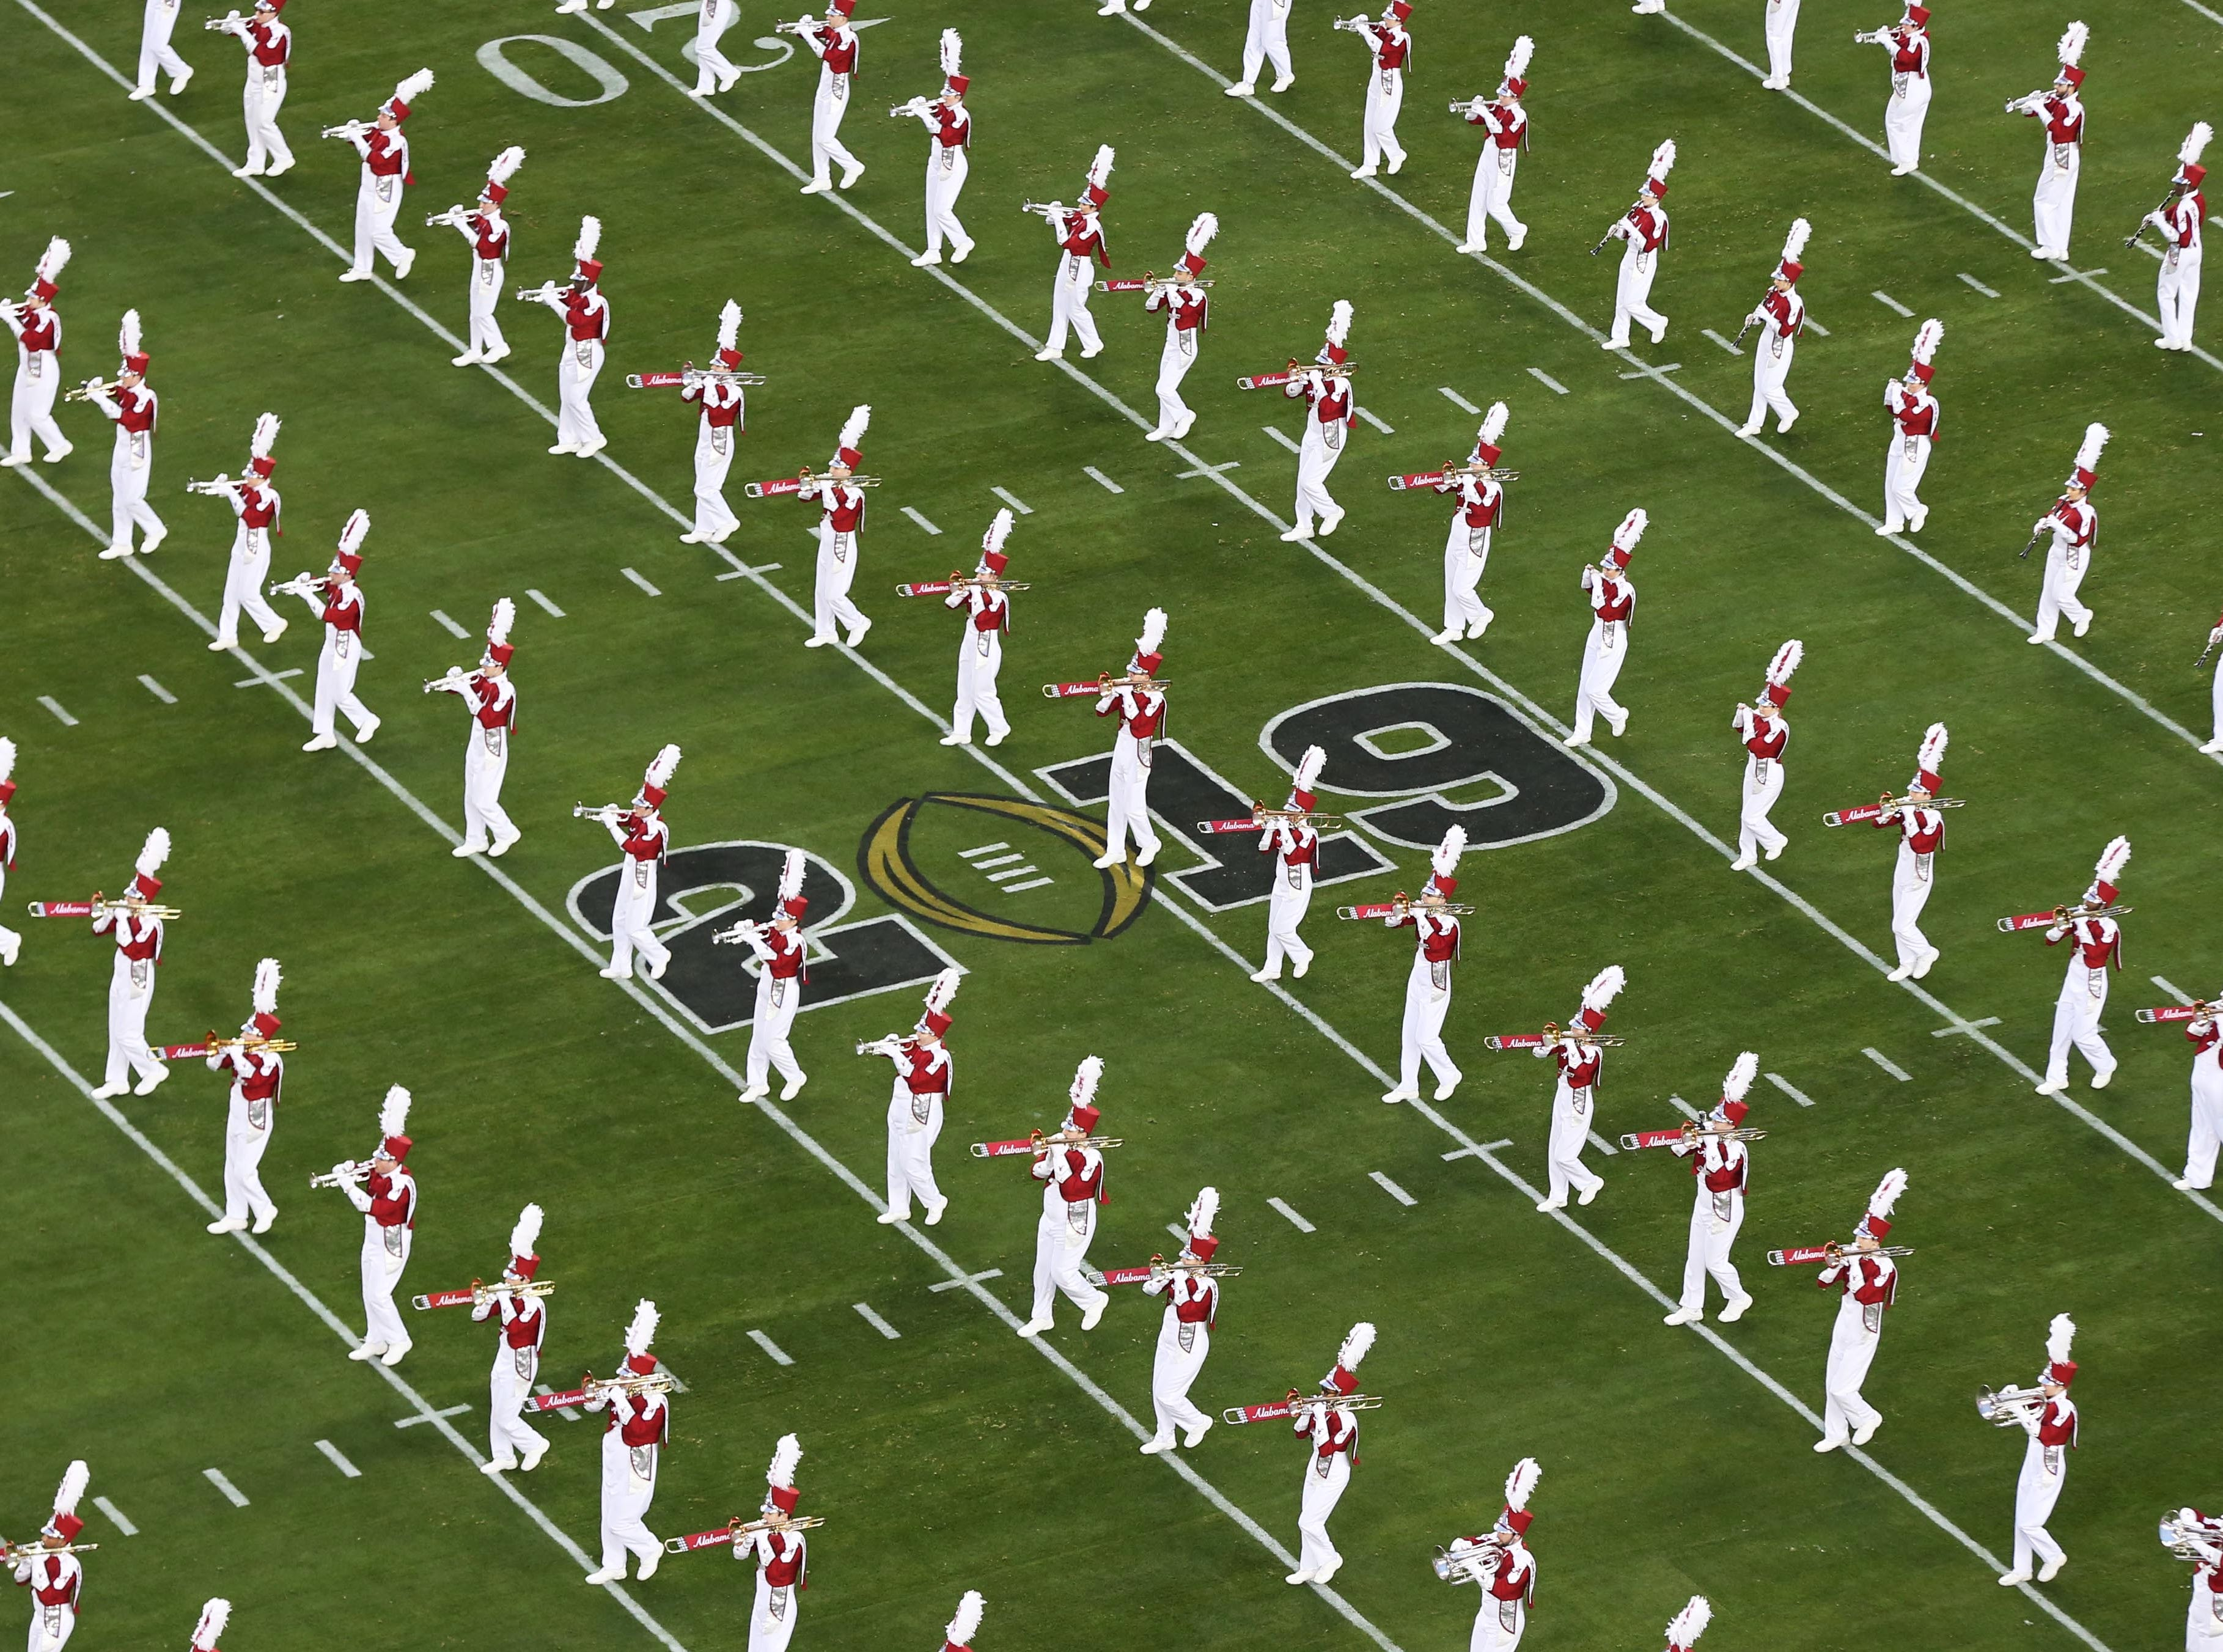 Band on the field before the game.